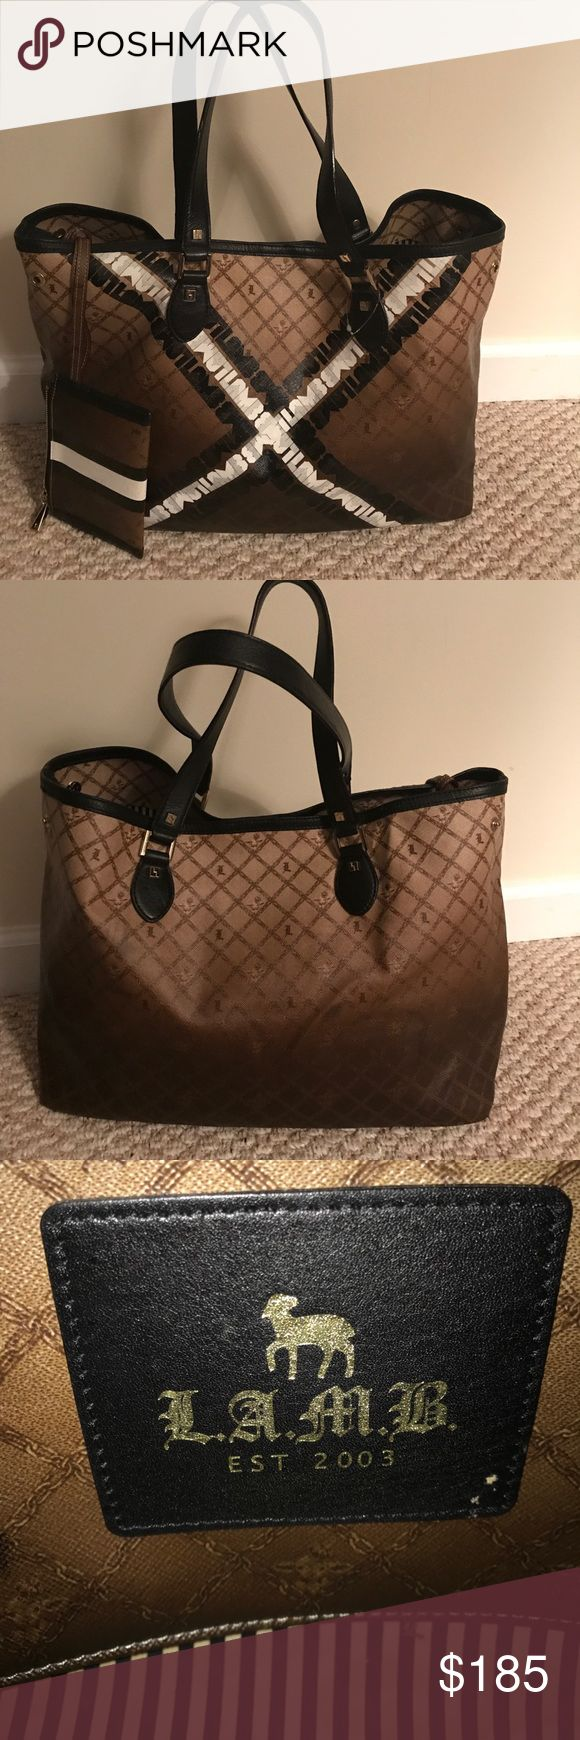 Beautiful authentic LAMB never full tote This is such a beautiful large LAMB never full tote with wallet. The bag is brown, lack and white. The hardware on the tote is gold. This bag is quite large and will hold your laptop and more! LAMB Bags Totes